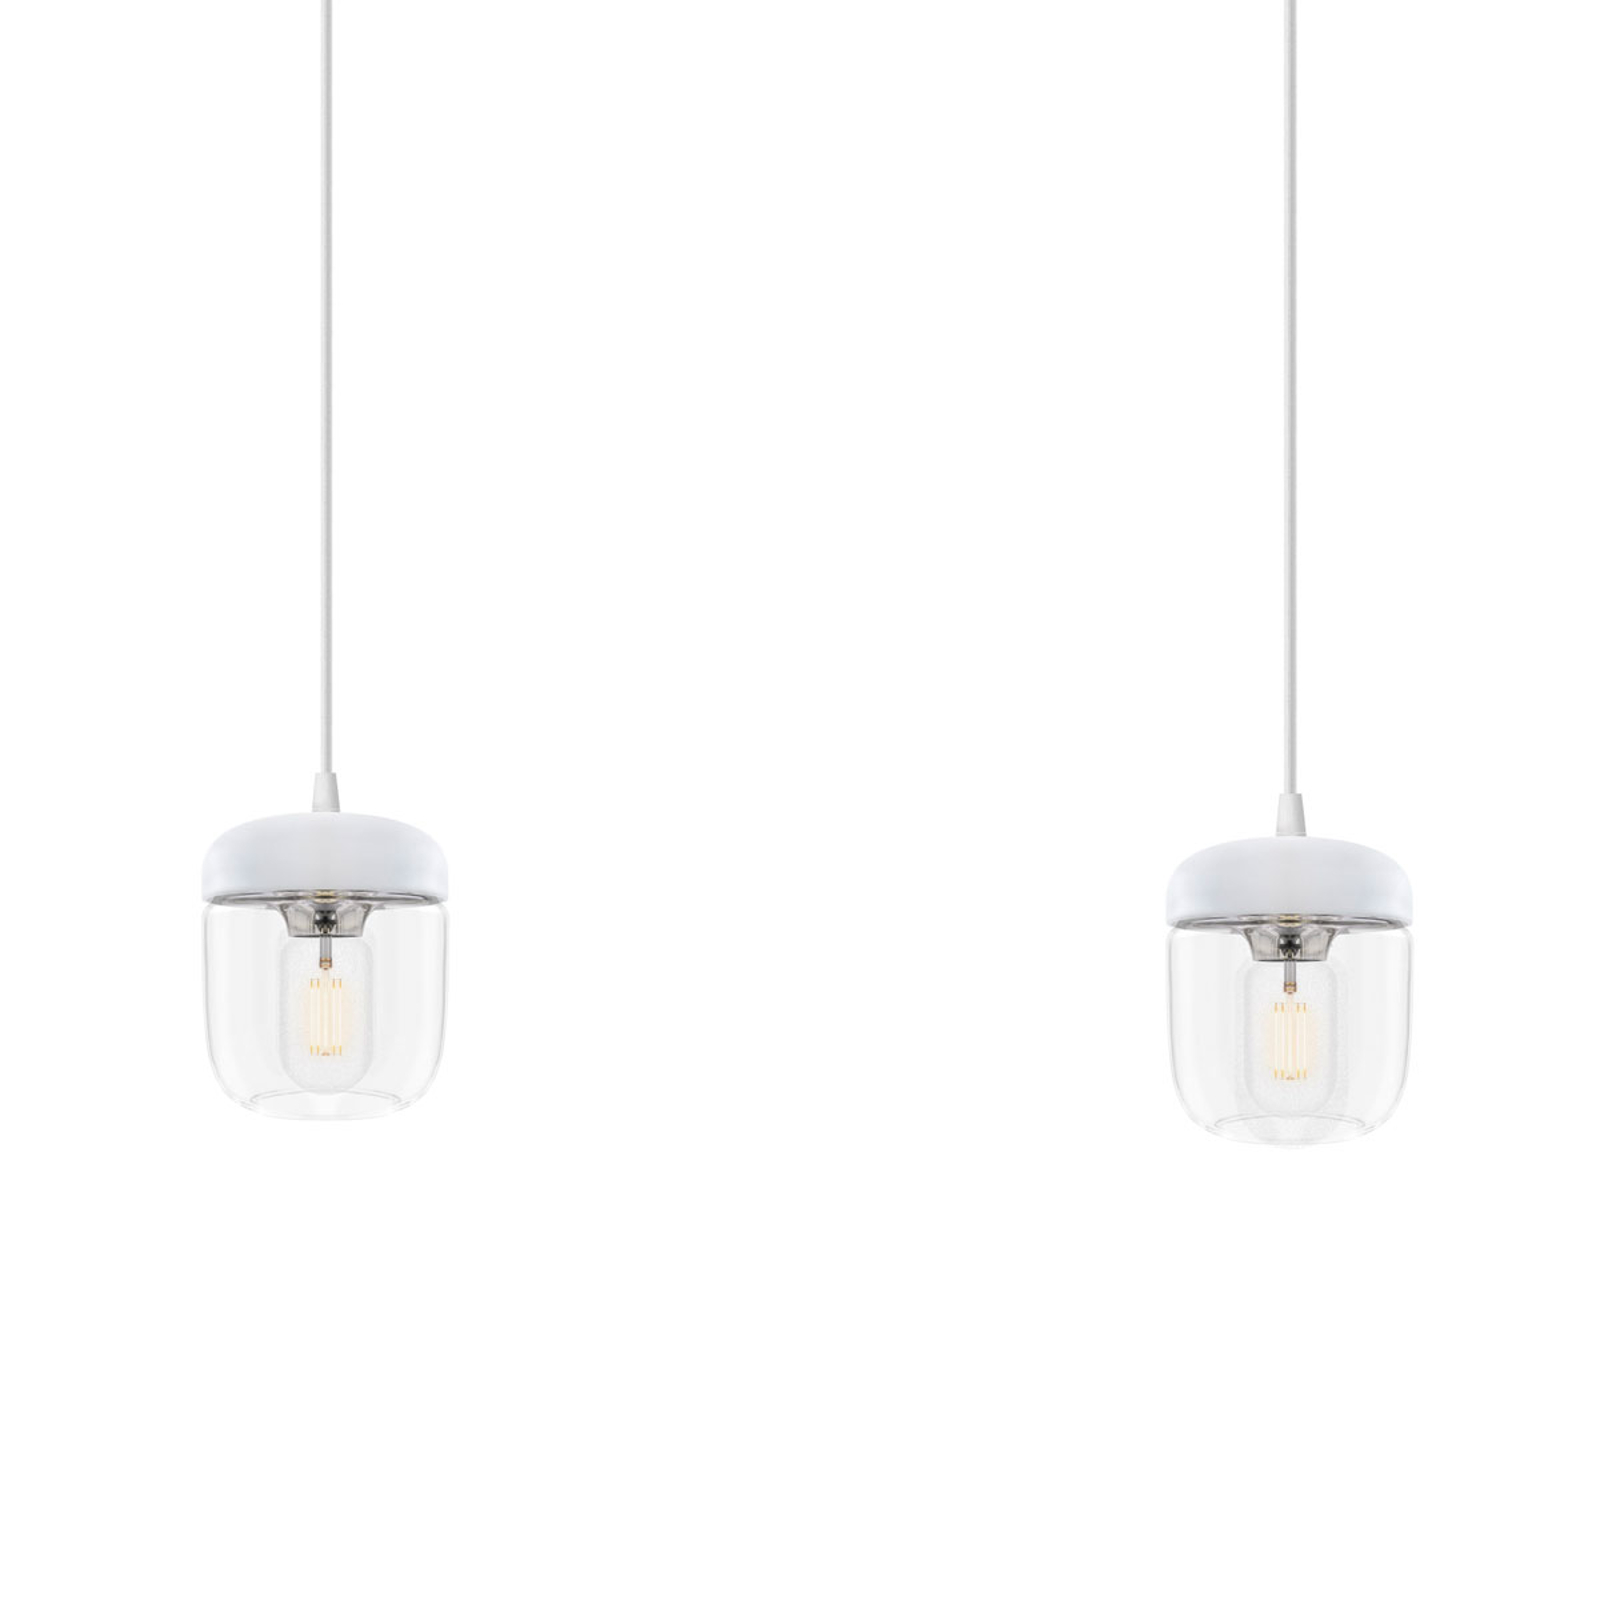 UMAGE Acorn hanglamp wit/staal, 2-lamps